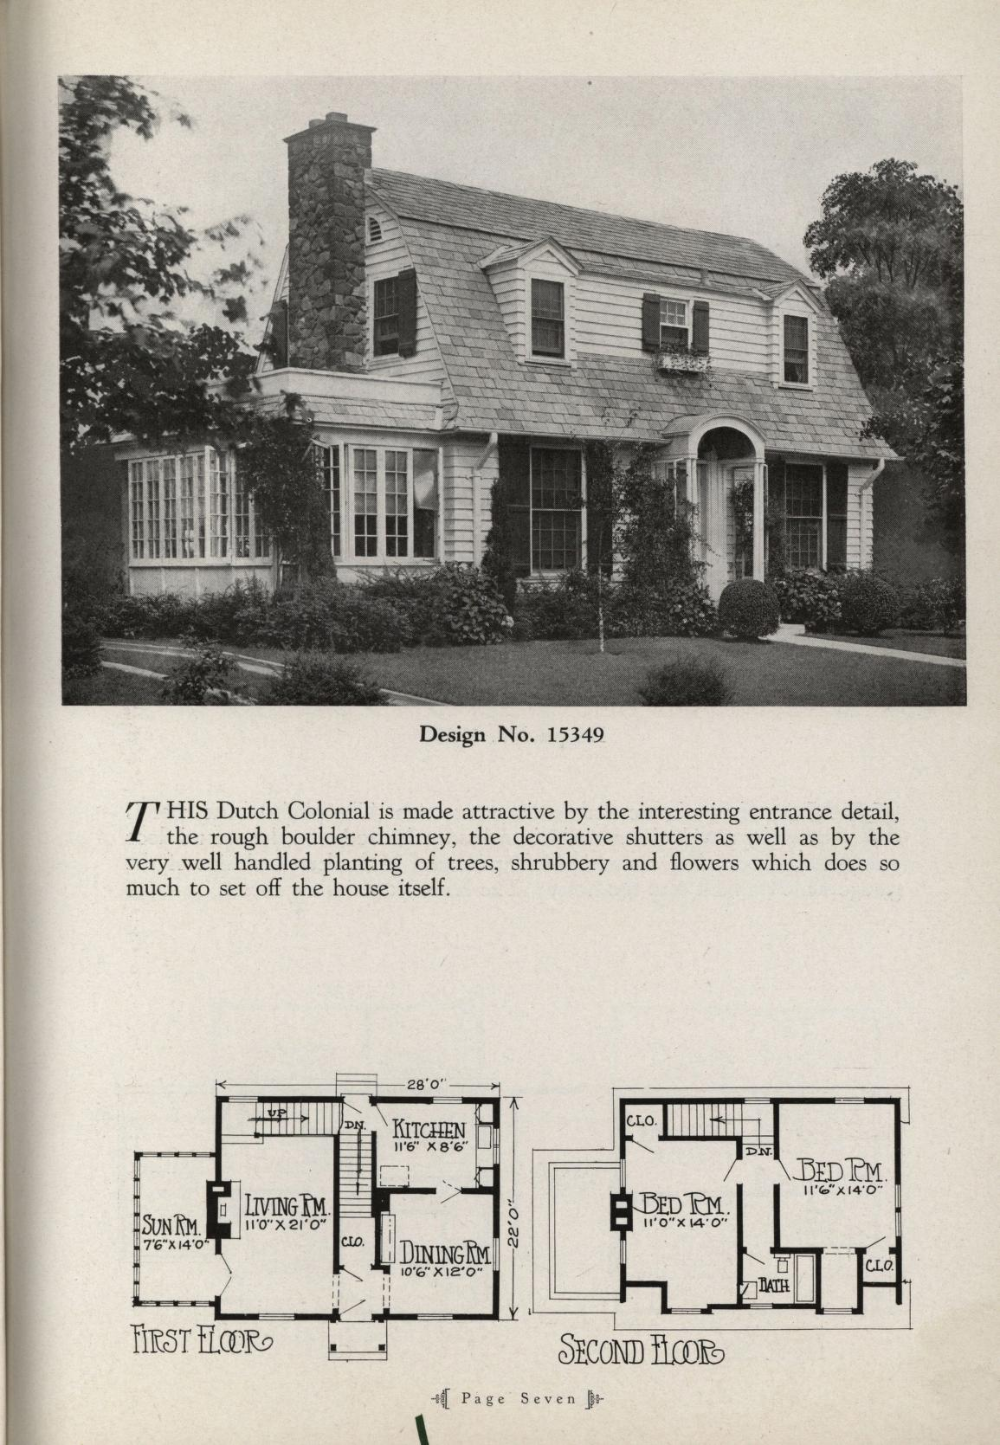 Artistic Homes Build A Home First William A Radford Free Download Borrow And Streaming In 2020 Building A House Craftsman House Plans House Plans Farmhouse